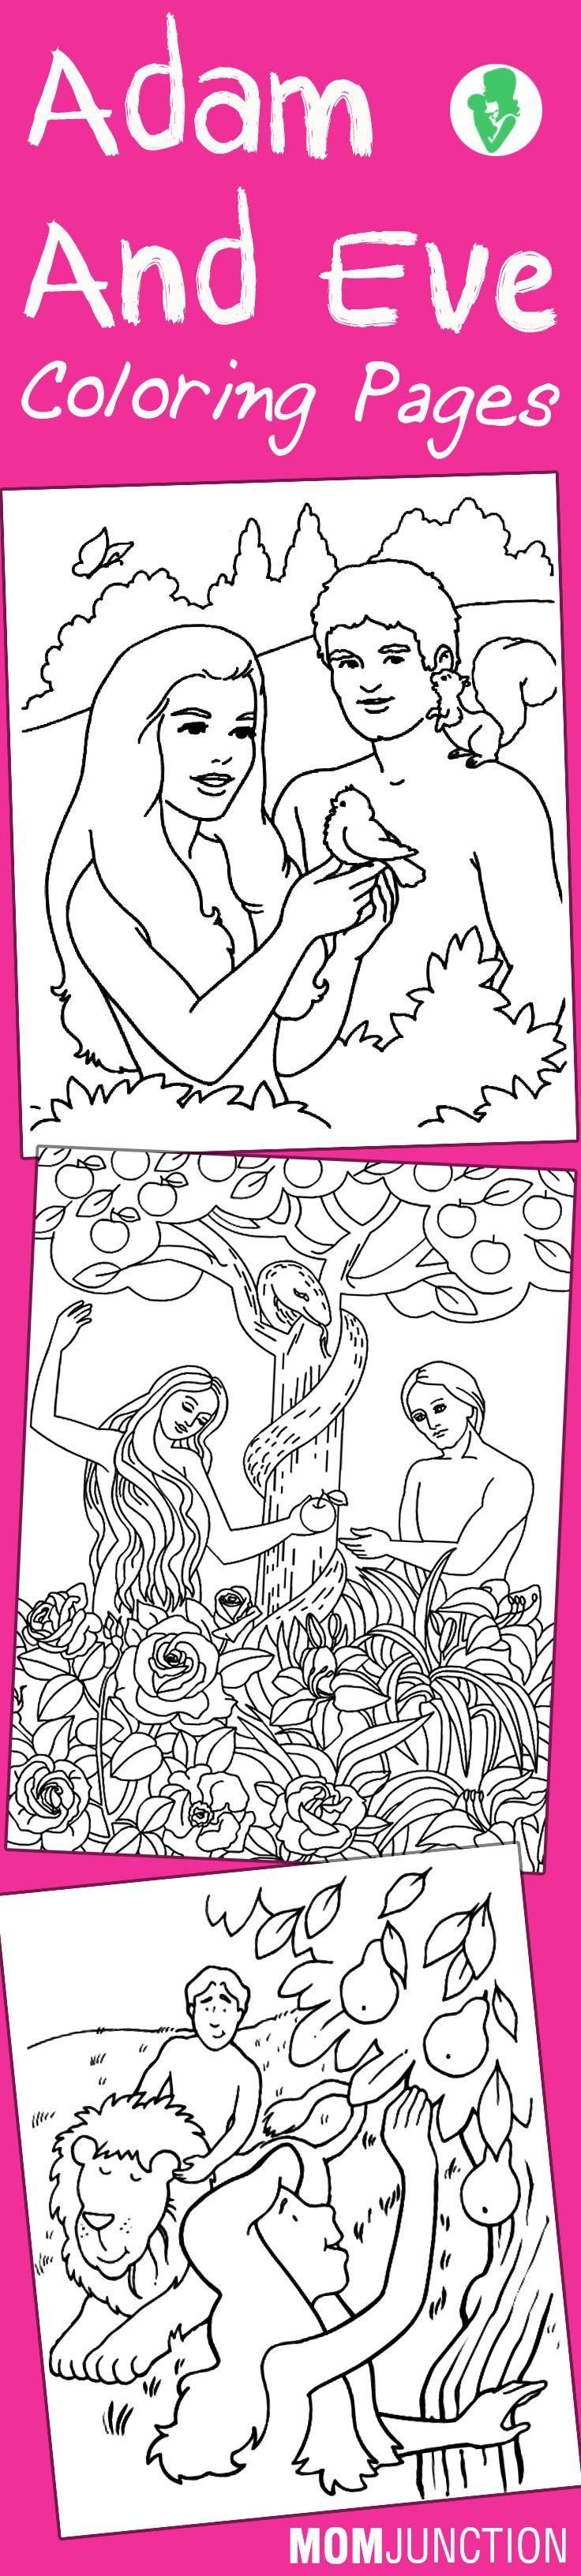 10 Best Adam And Eve Coloring Pages For Your Toddler